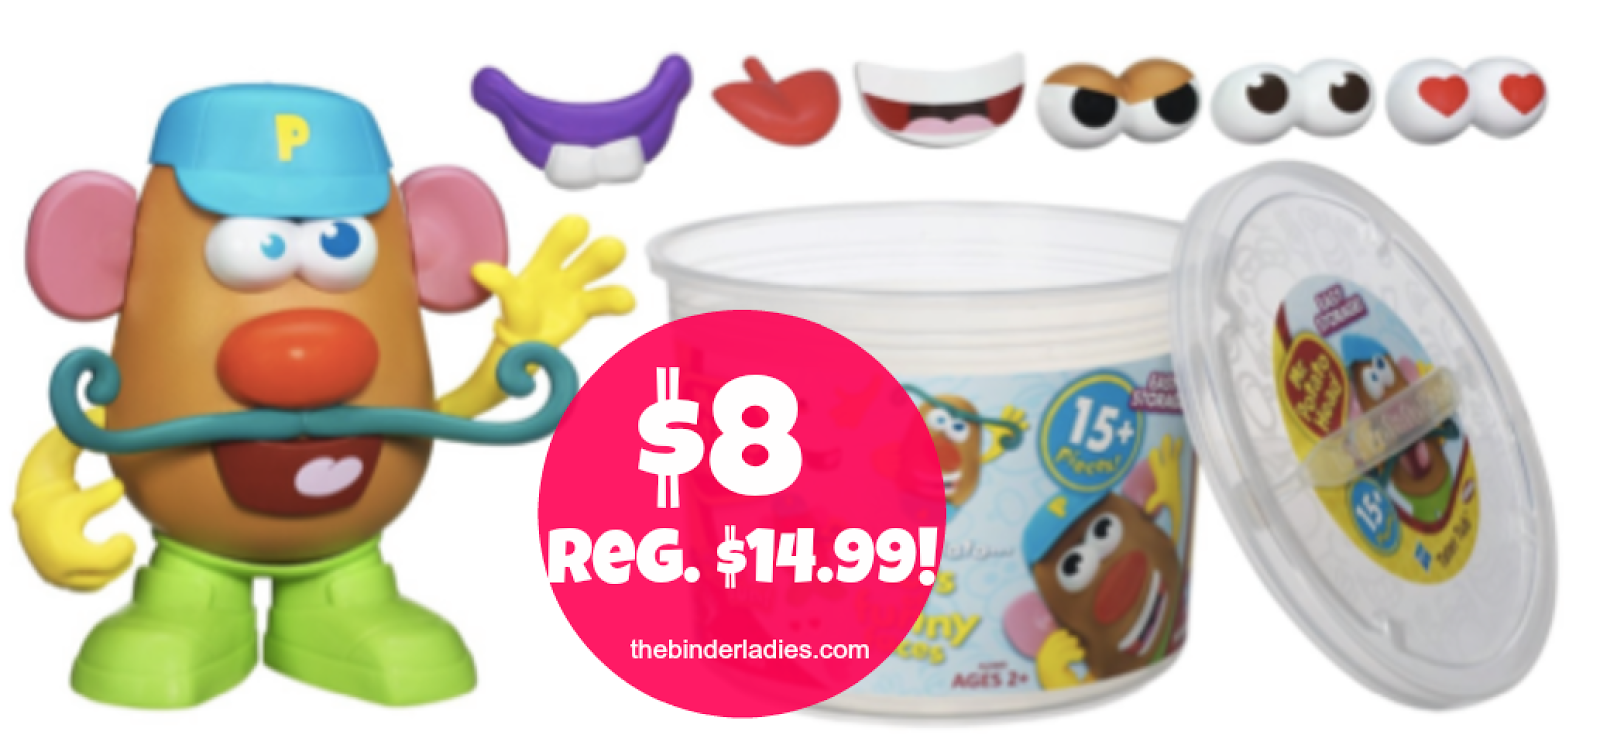 http://www.thebinderladies.com/2014/10/amazon-playskool-mr-potato-head-tater.html#.VDxkFEvdtbw